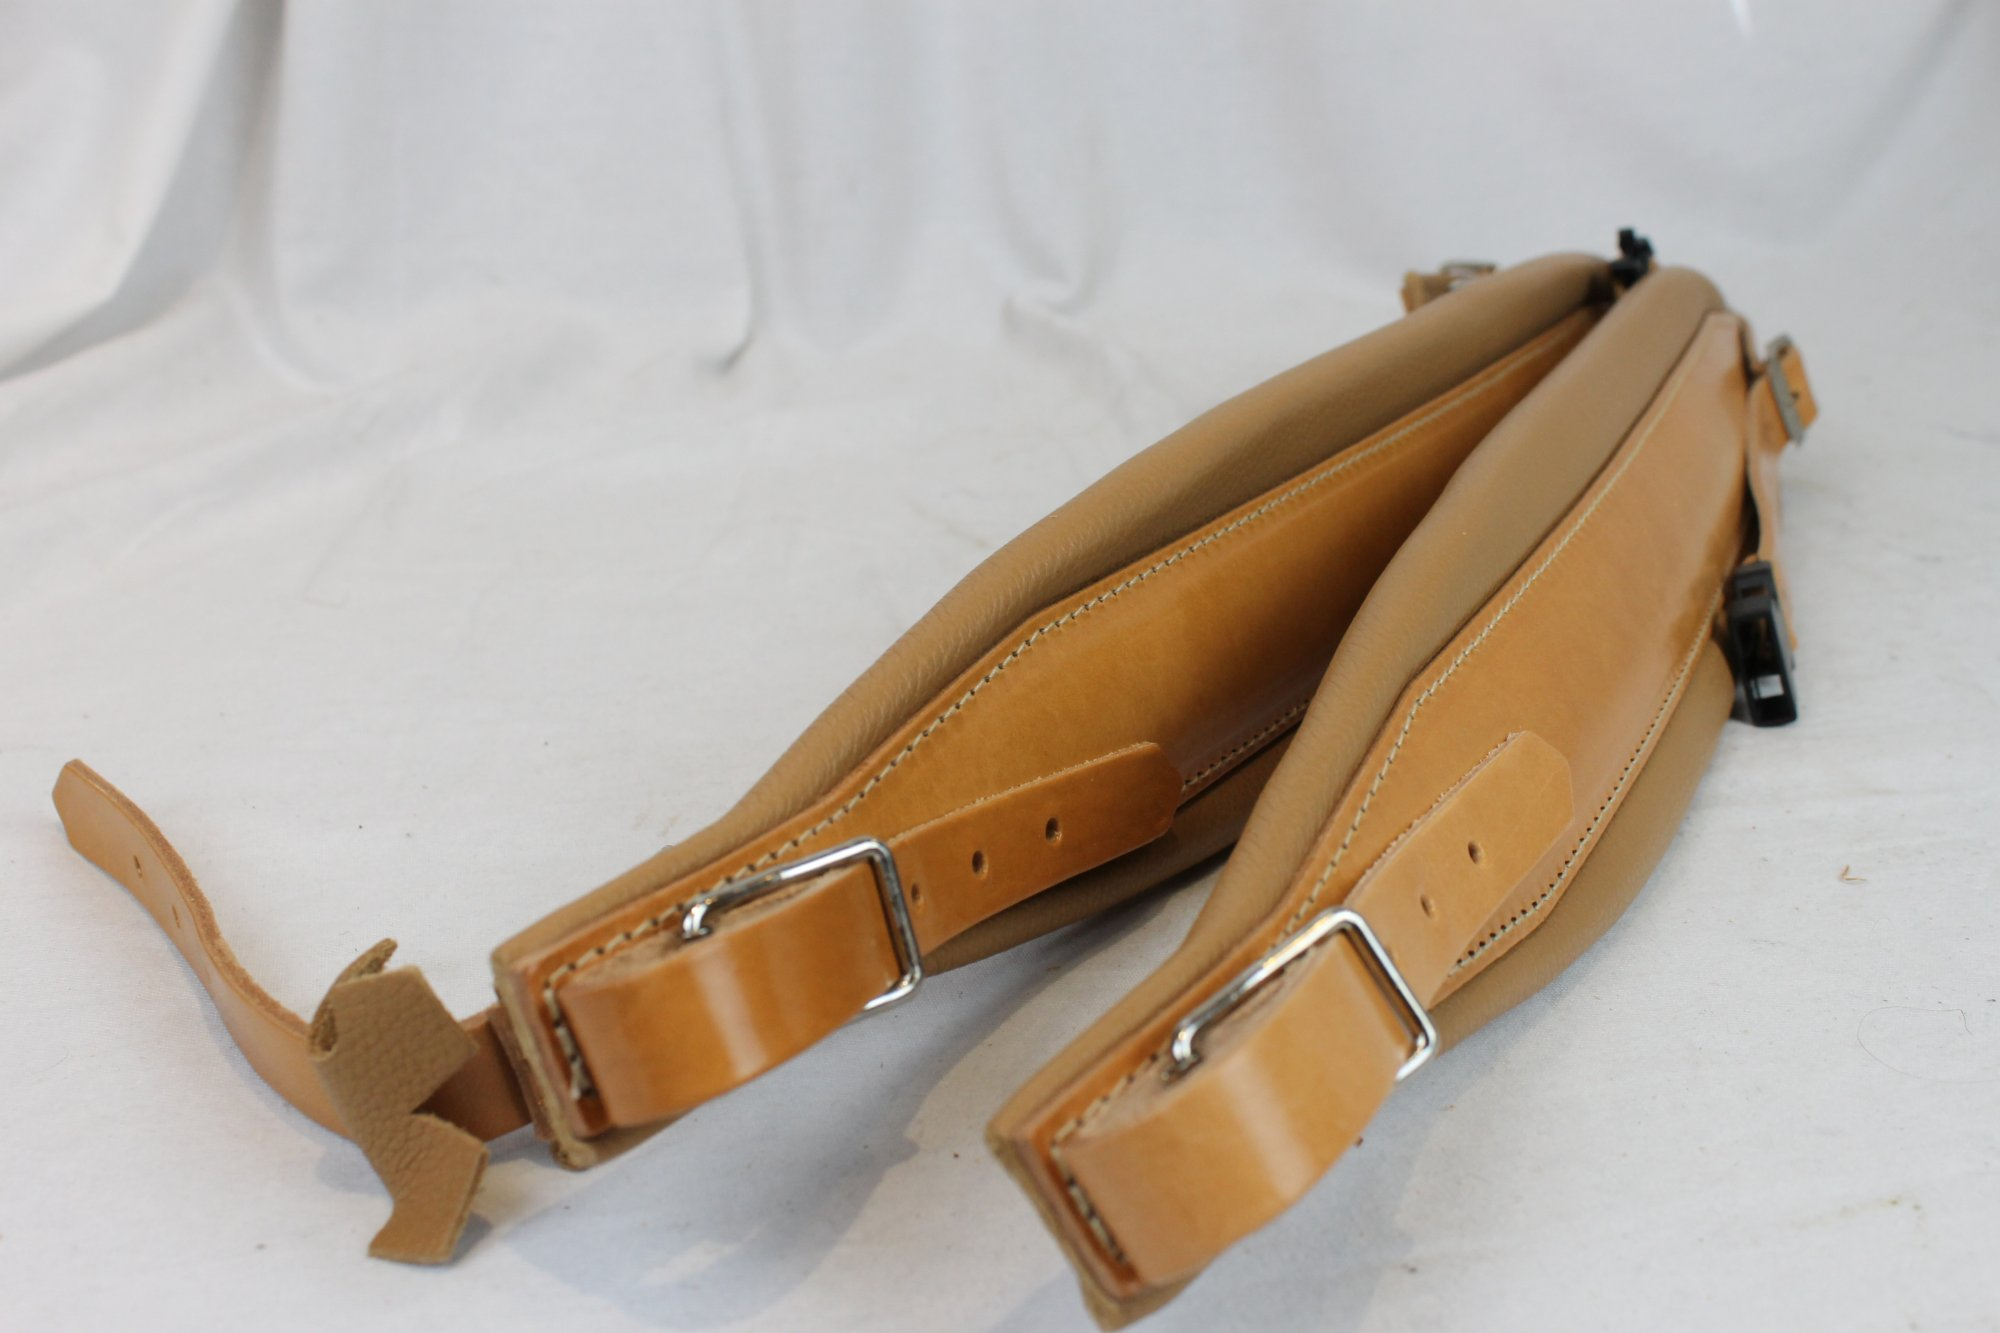 New Tan Leather Pelle Fuselli Accordion Shoulder Straps Width (8cm / 3.1 inch) Length (105cm-123cm / 41.3-48.4 inch)